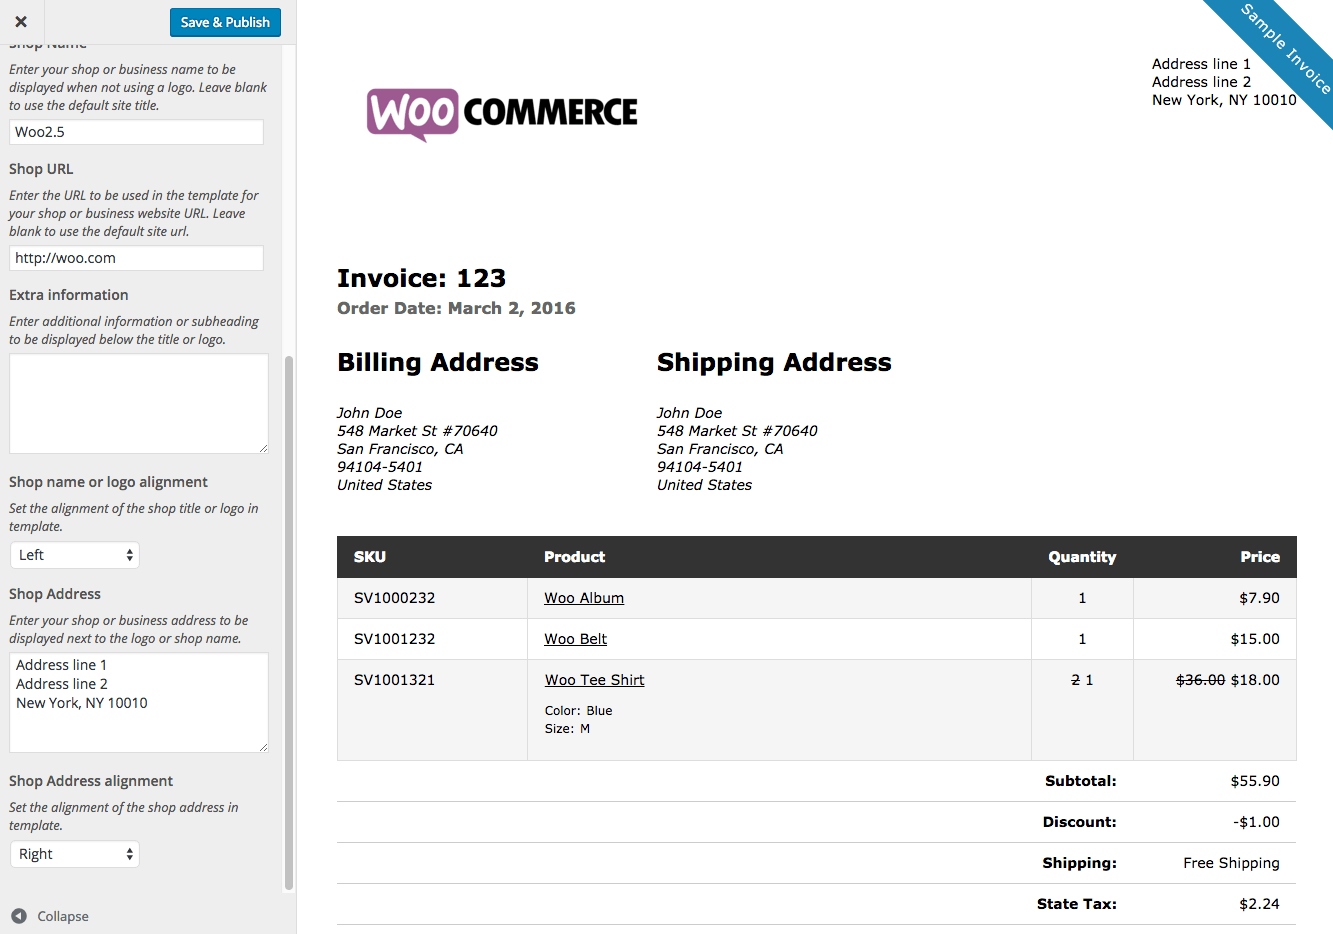 Shopdesignsus  Personable Woocommerce Print Invoices Amp Packing Lists  Woocommerce Docs With Exquisite Woocommerce Print Invoices  Packing Lists Customizer With Delightful Apple Mail Return Receipt Also Place Of Receipt In Addition I Lost My Uscis Receipt Number And Income Receipts As Well As Receipt Scanning App Iphone Additionally Neat Receipts Vs Scansnap From Docswoocommercecom With Shopdesignsus  Exquisite Woocommerce Print Invoices Amp Packing Lists  Woocommerce Docs With Delightful Woocommerce Print Invoices  Packing Lists Customizer And Personable Apple Mail Return Receipt Also Place Of Receipt In Addition I Lost My Uscis Receipt Number From Docswoocommercecom